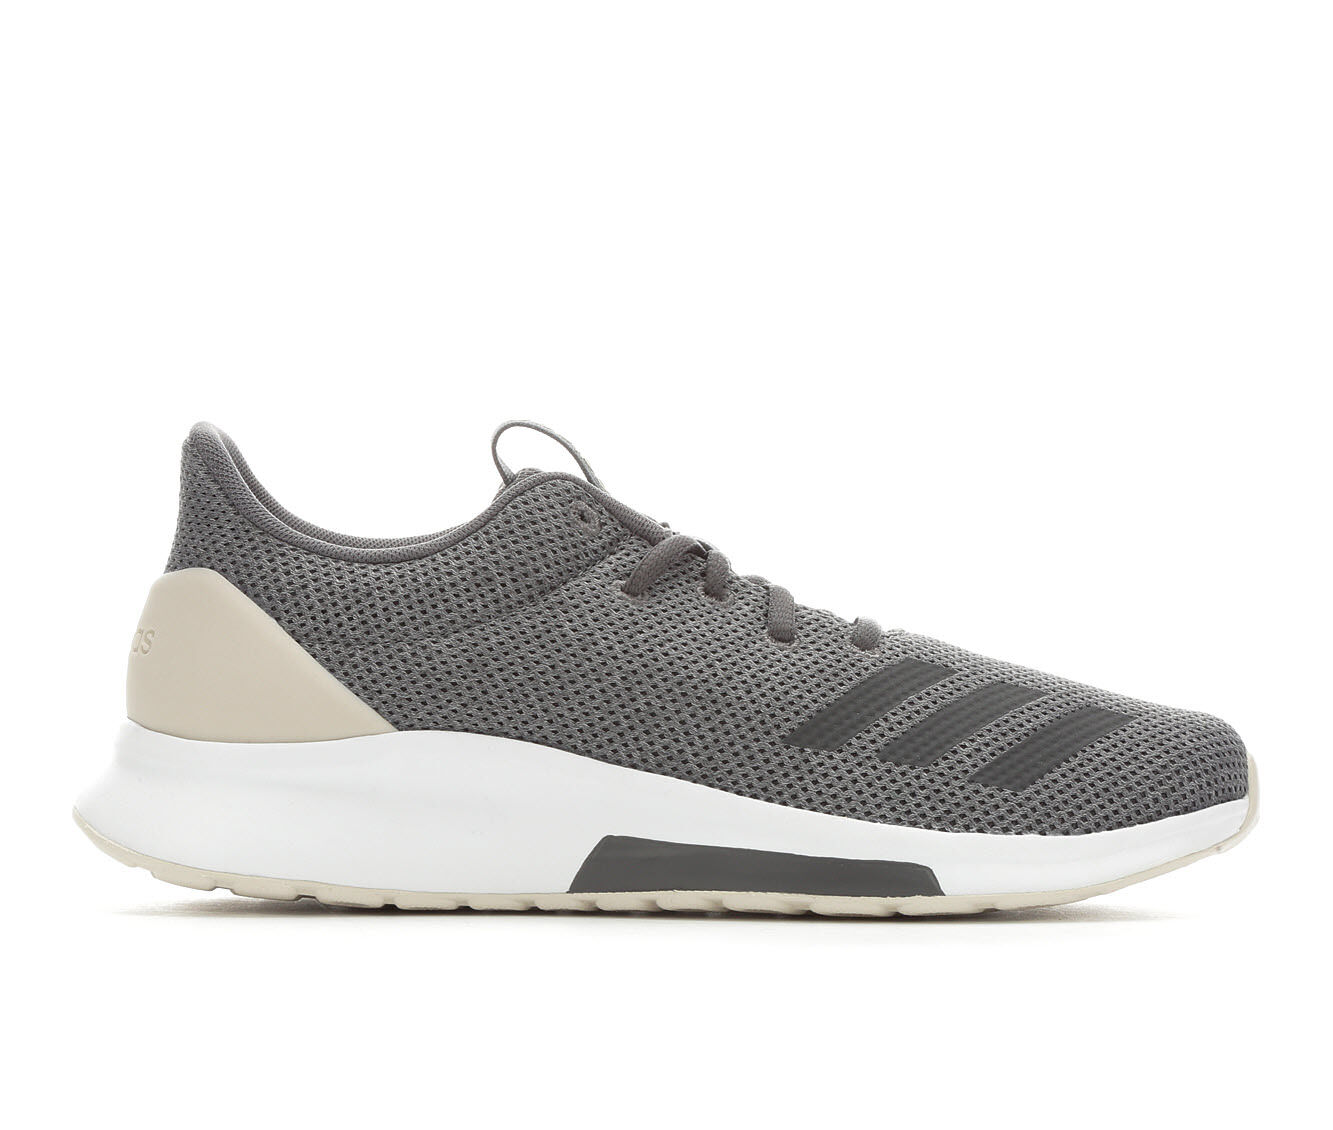 Women's Adidas Pure Motion Sneakers Grey/Brown/Wht